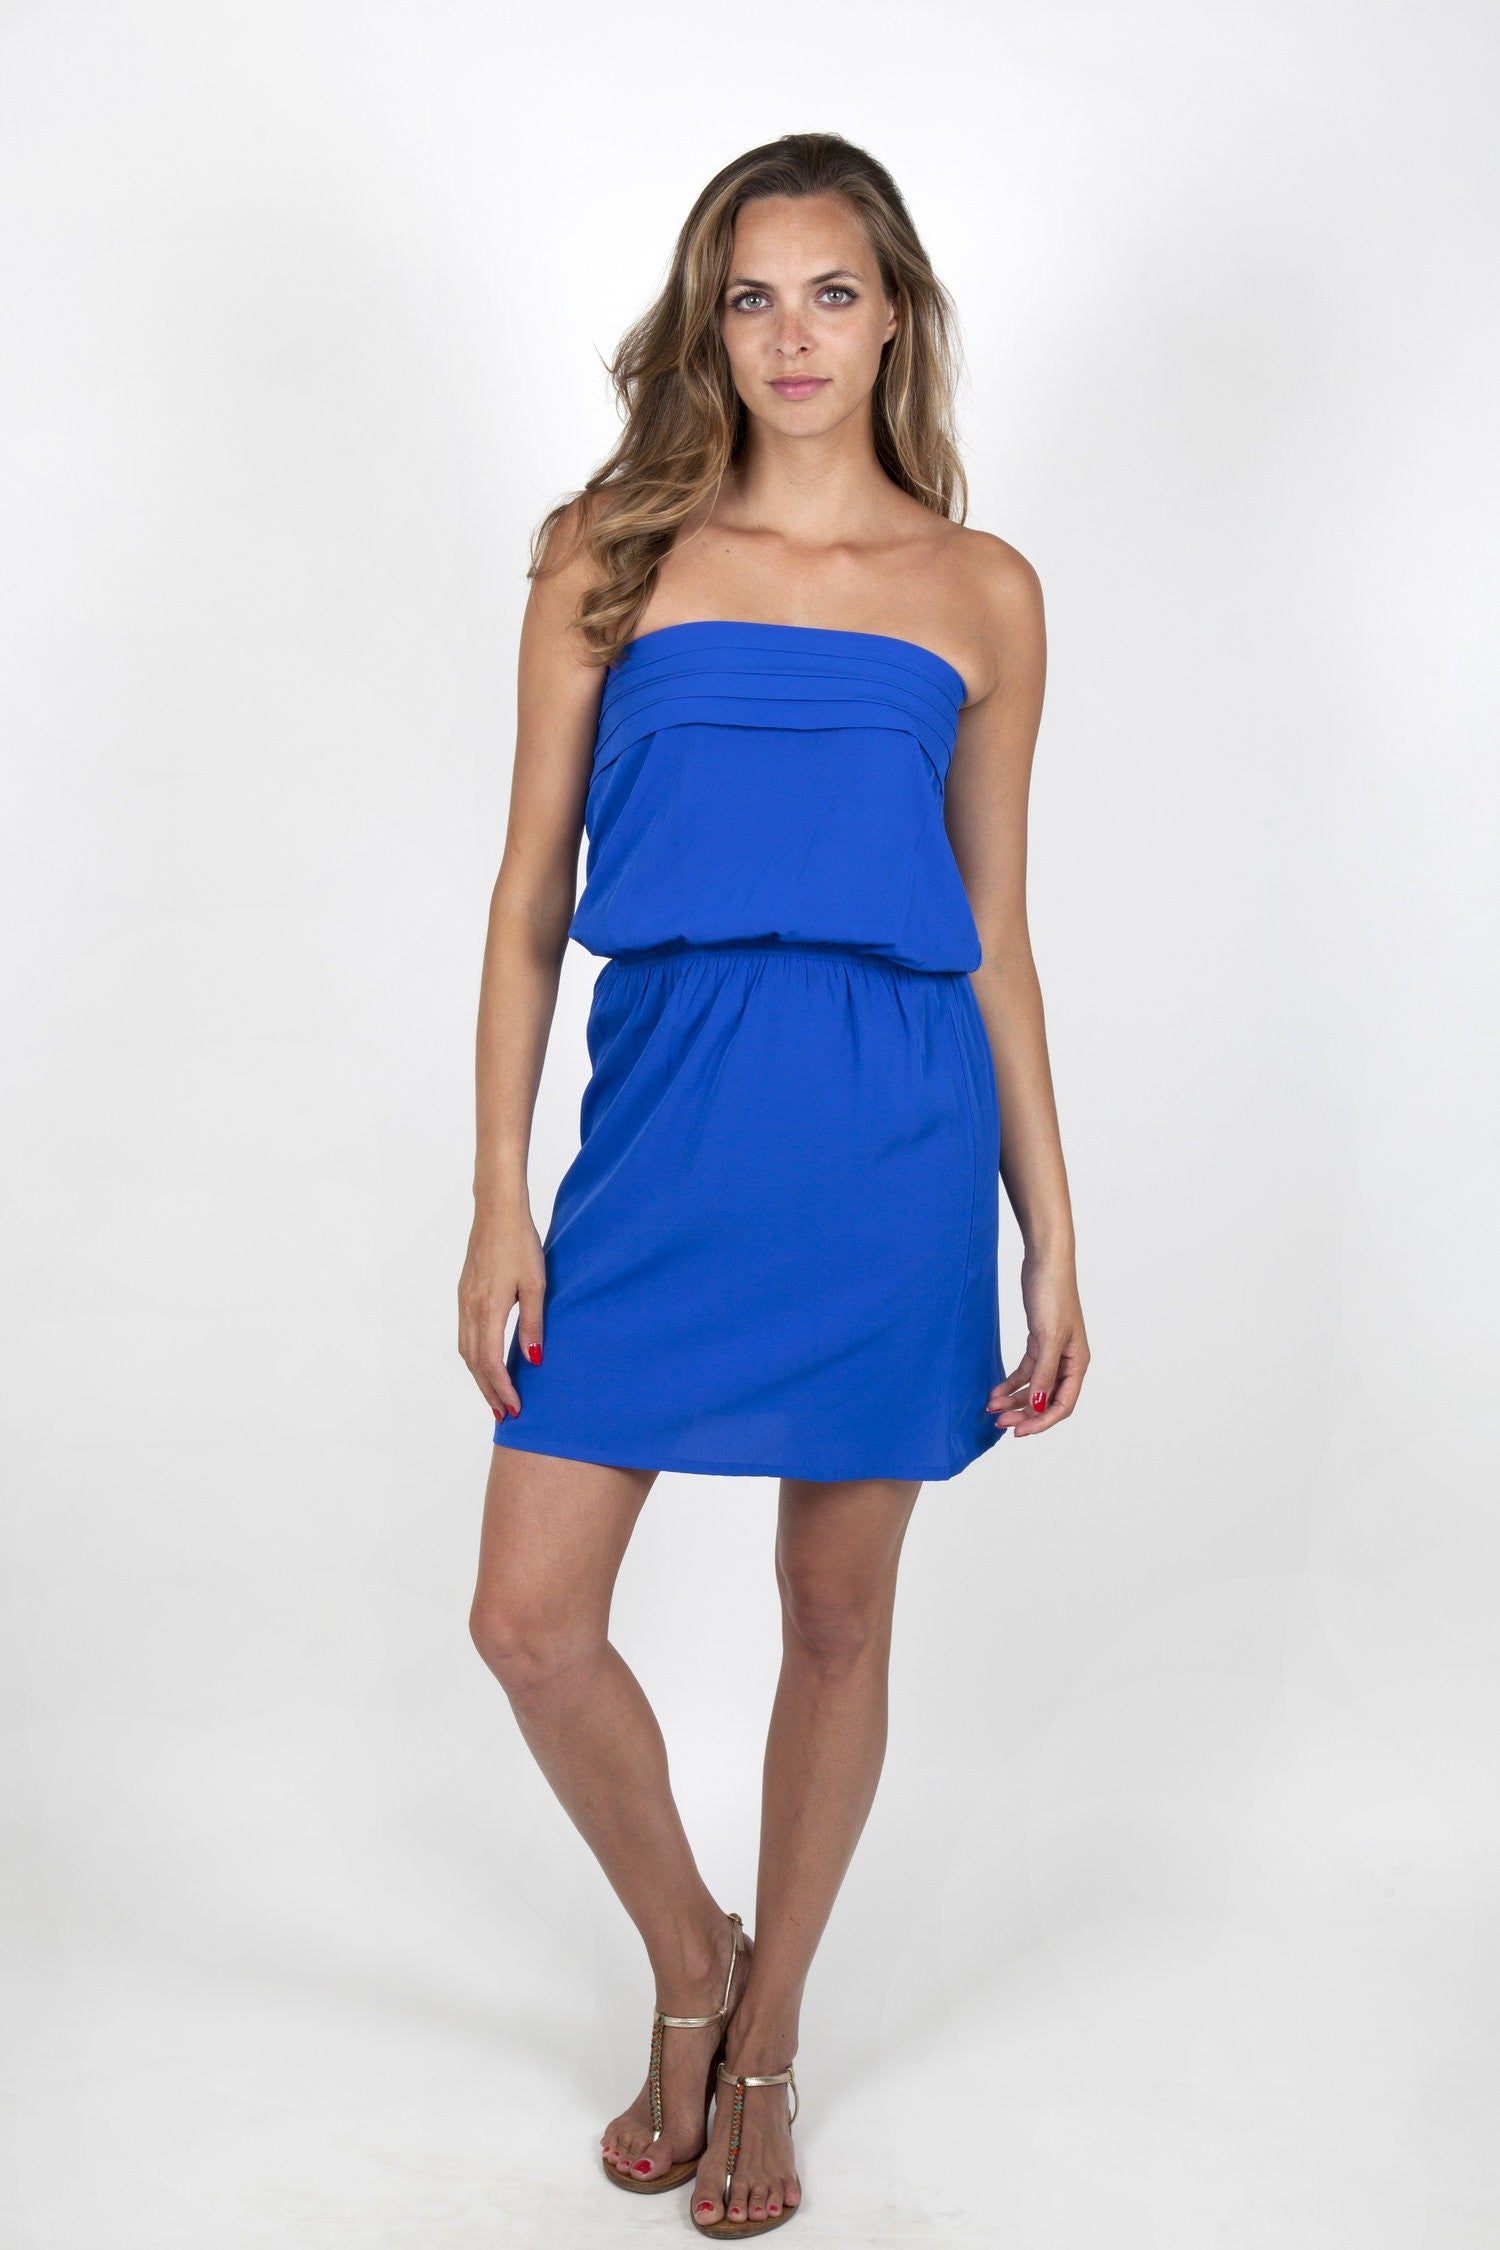 Julie Electric Blue Dress Capsule Collection By Juliette - S / - Dresses